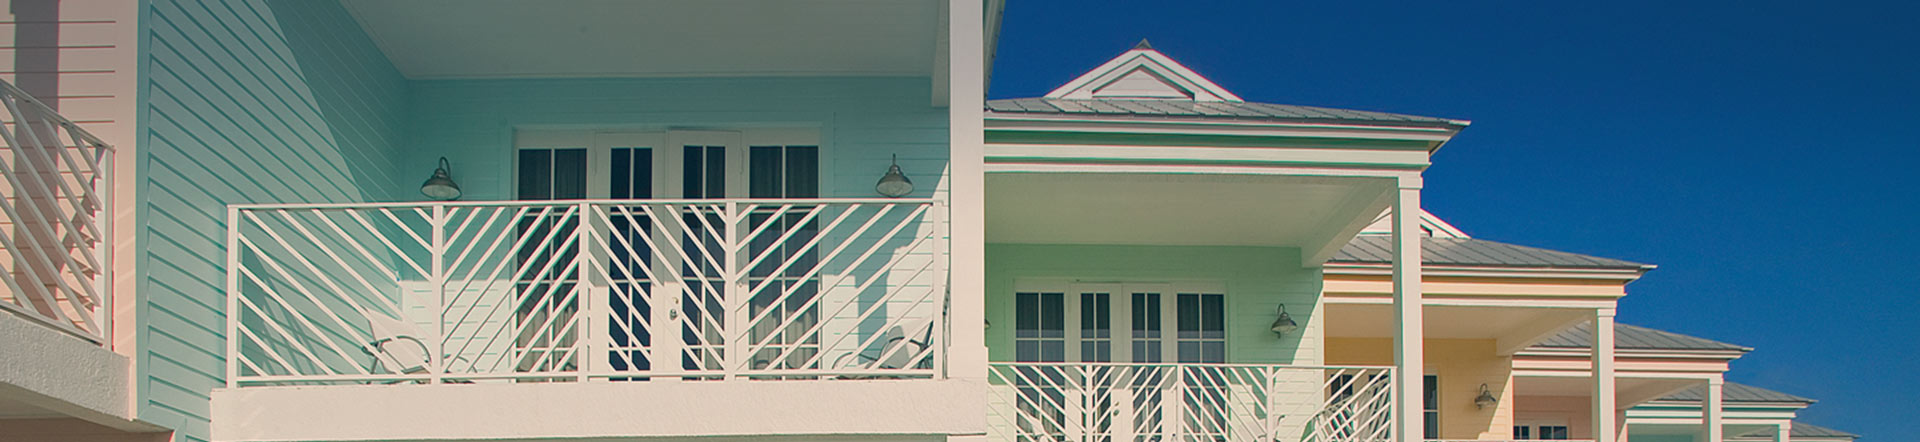 bayside-townhomes-Bayside-Cottages-S